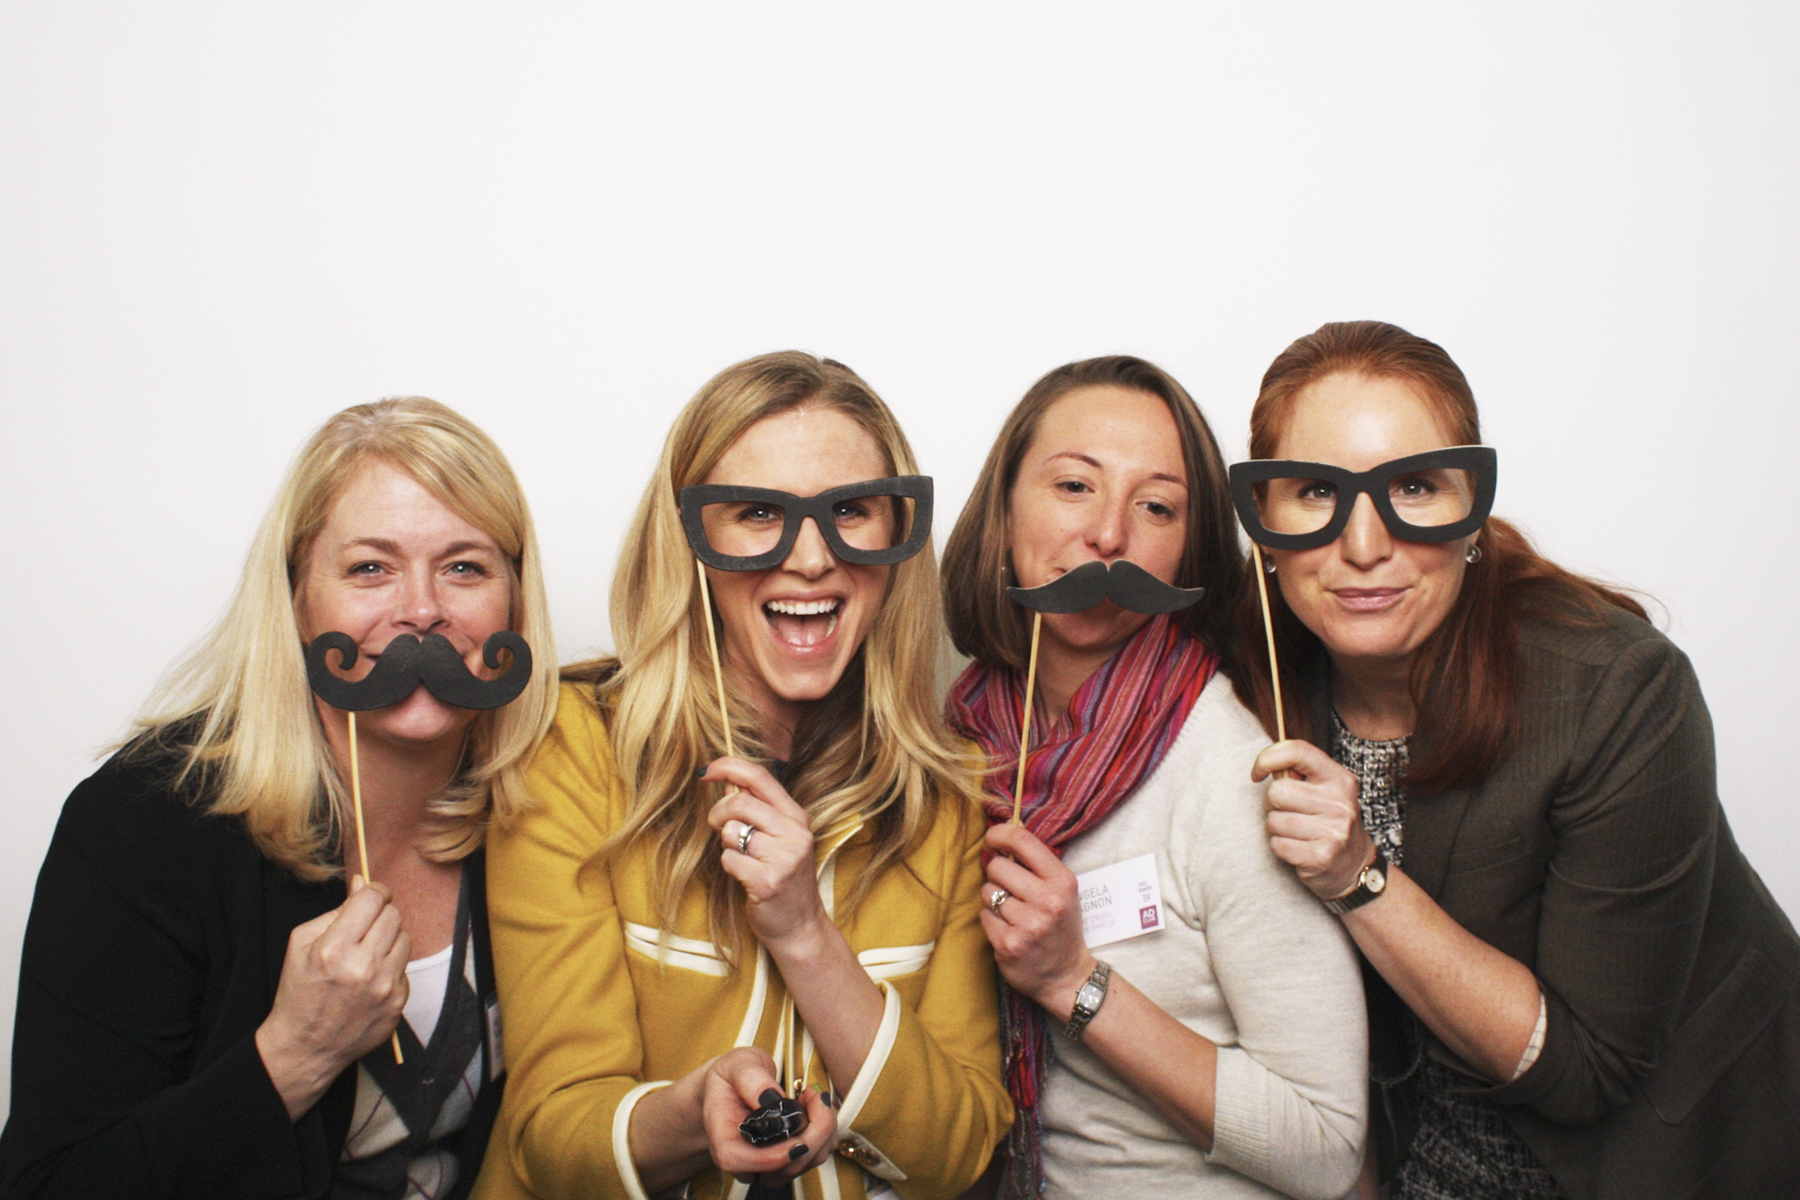 Corporate Event Photo Booth for Hire